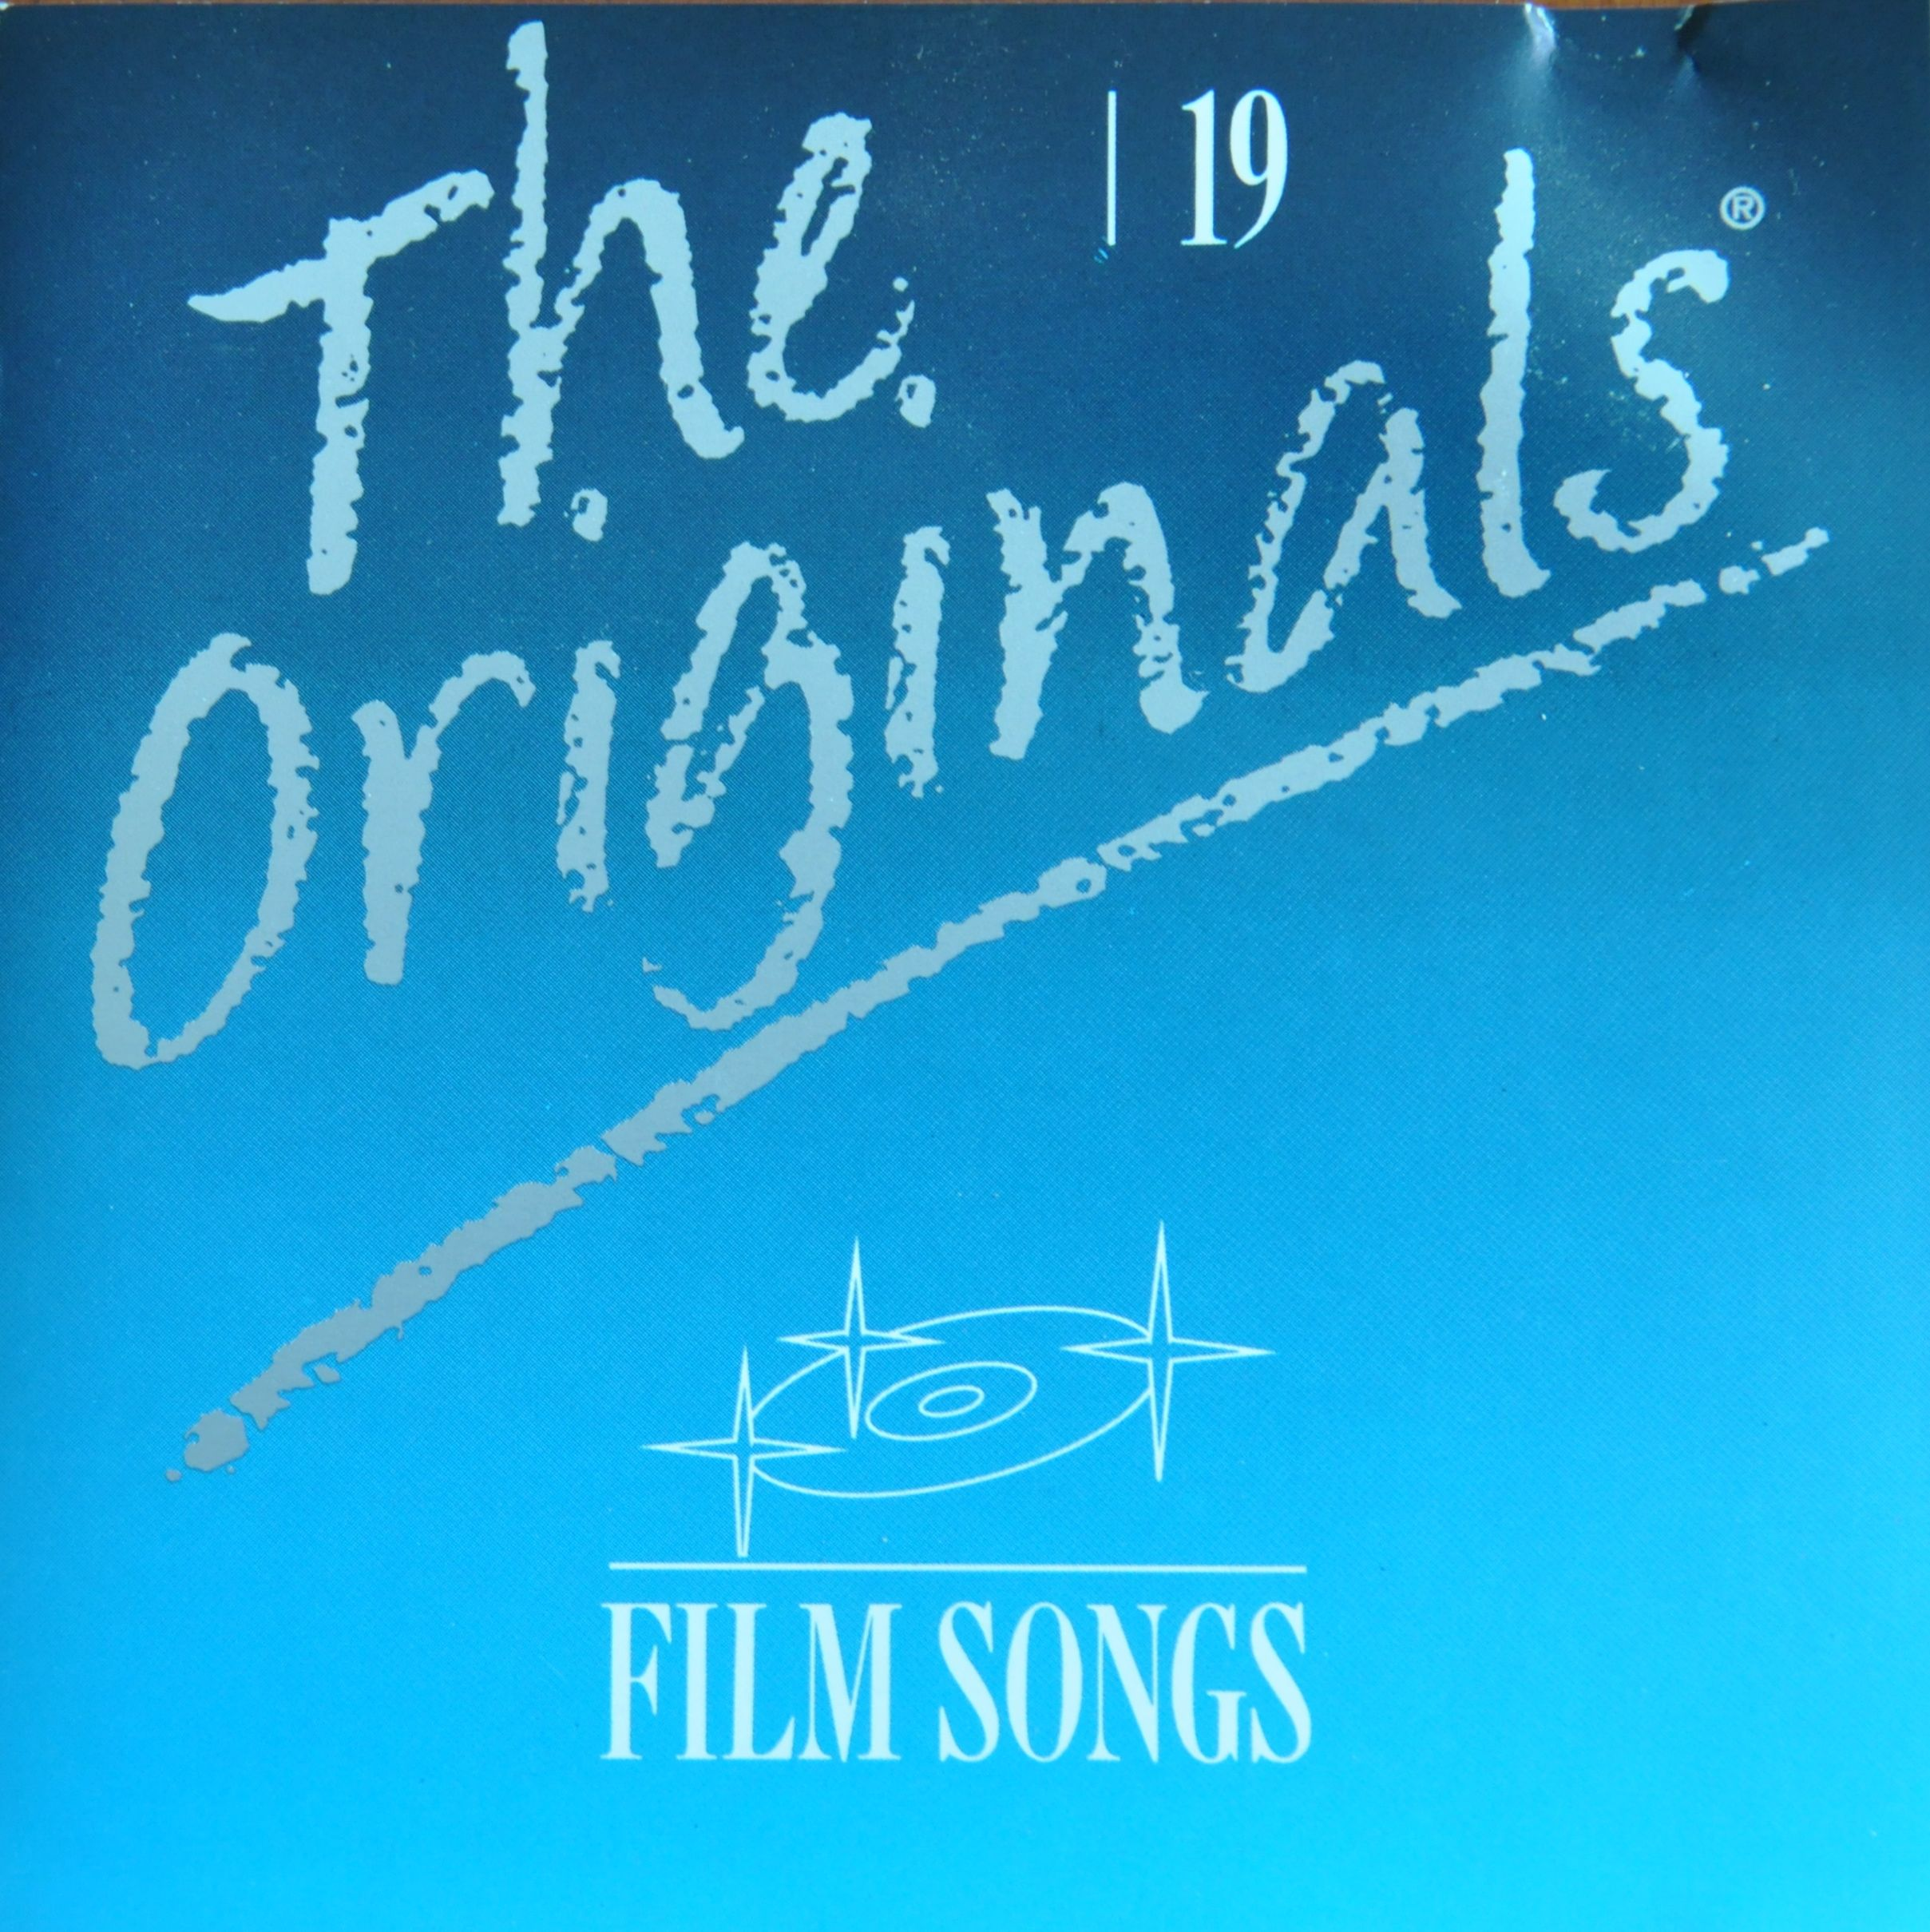 jaquettes2/The-Originals_19_Film-songs.jpg